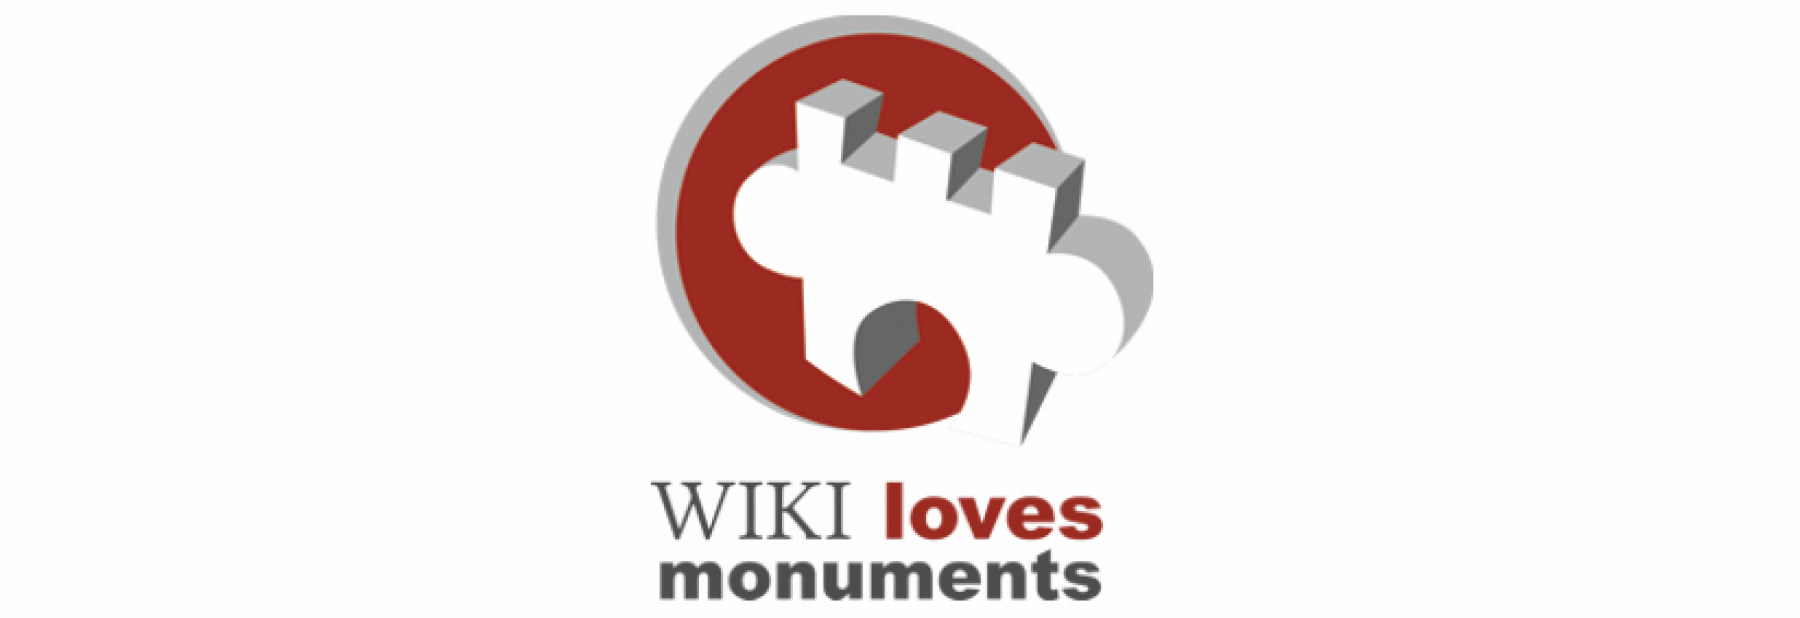 wiki_loves_monuments